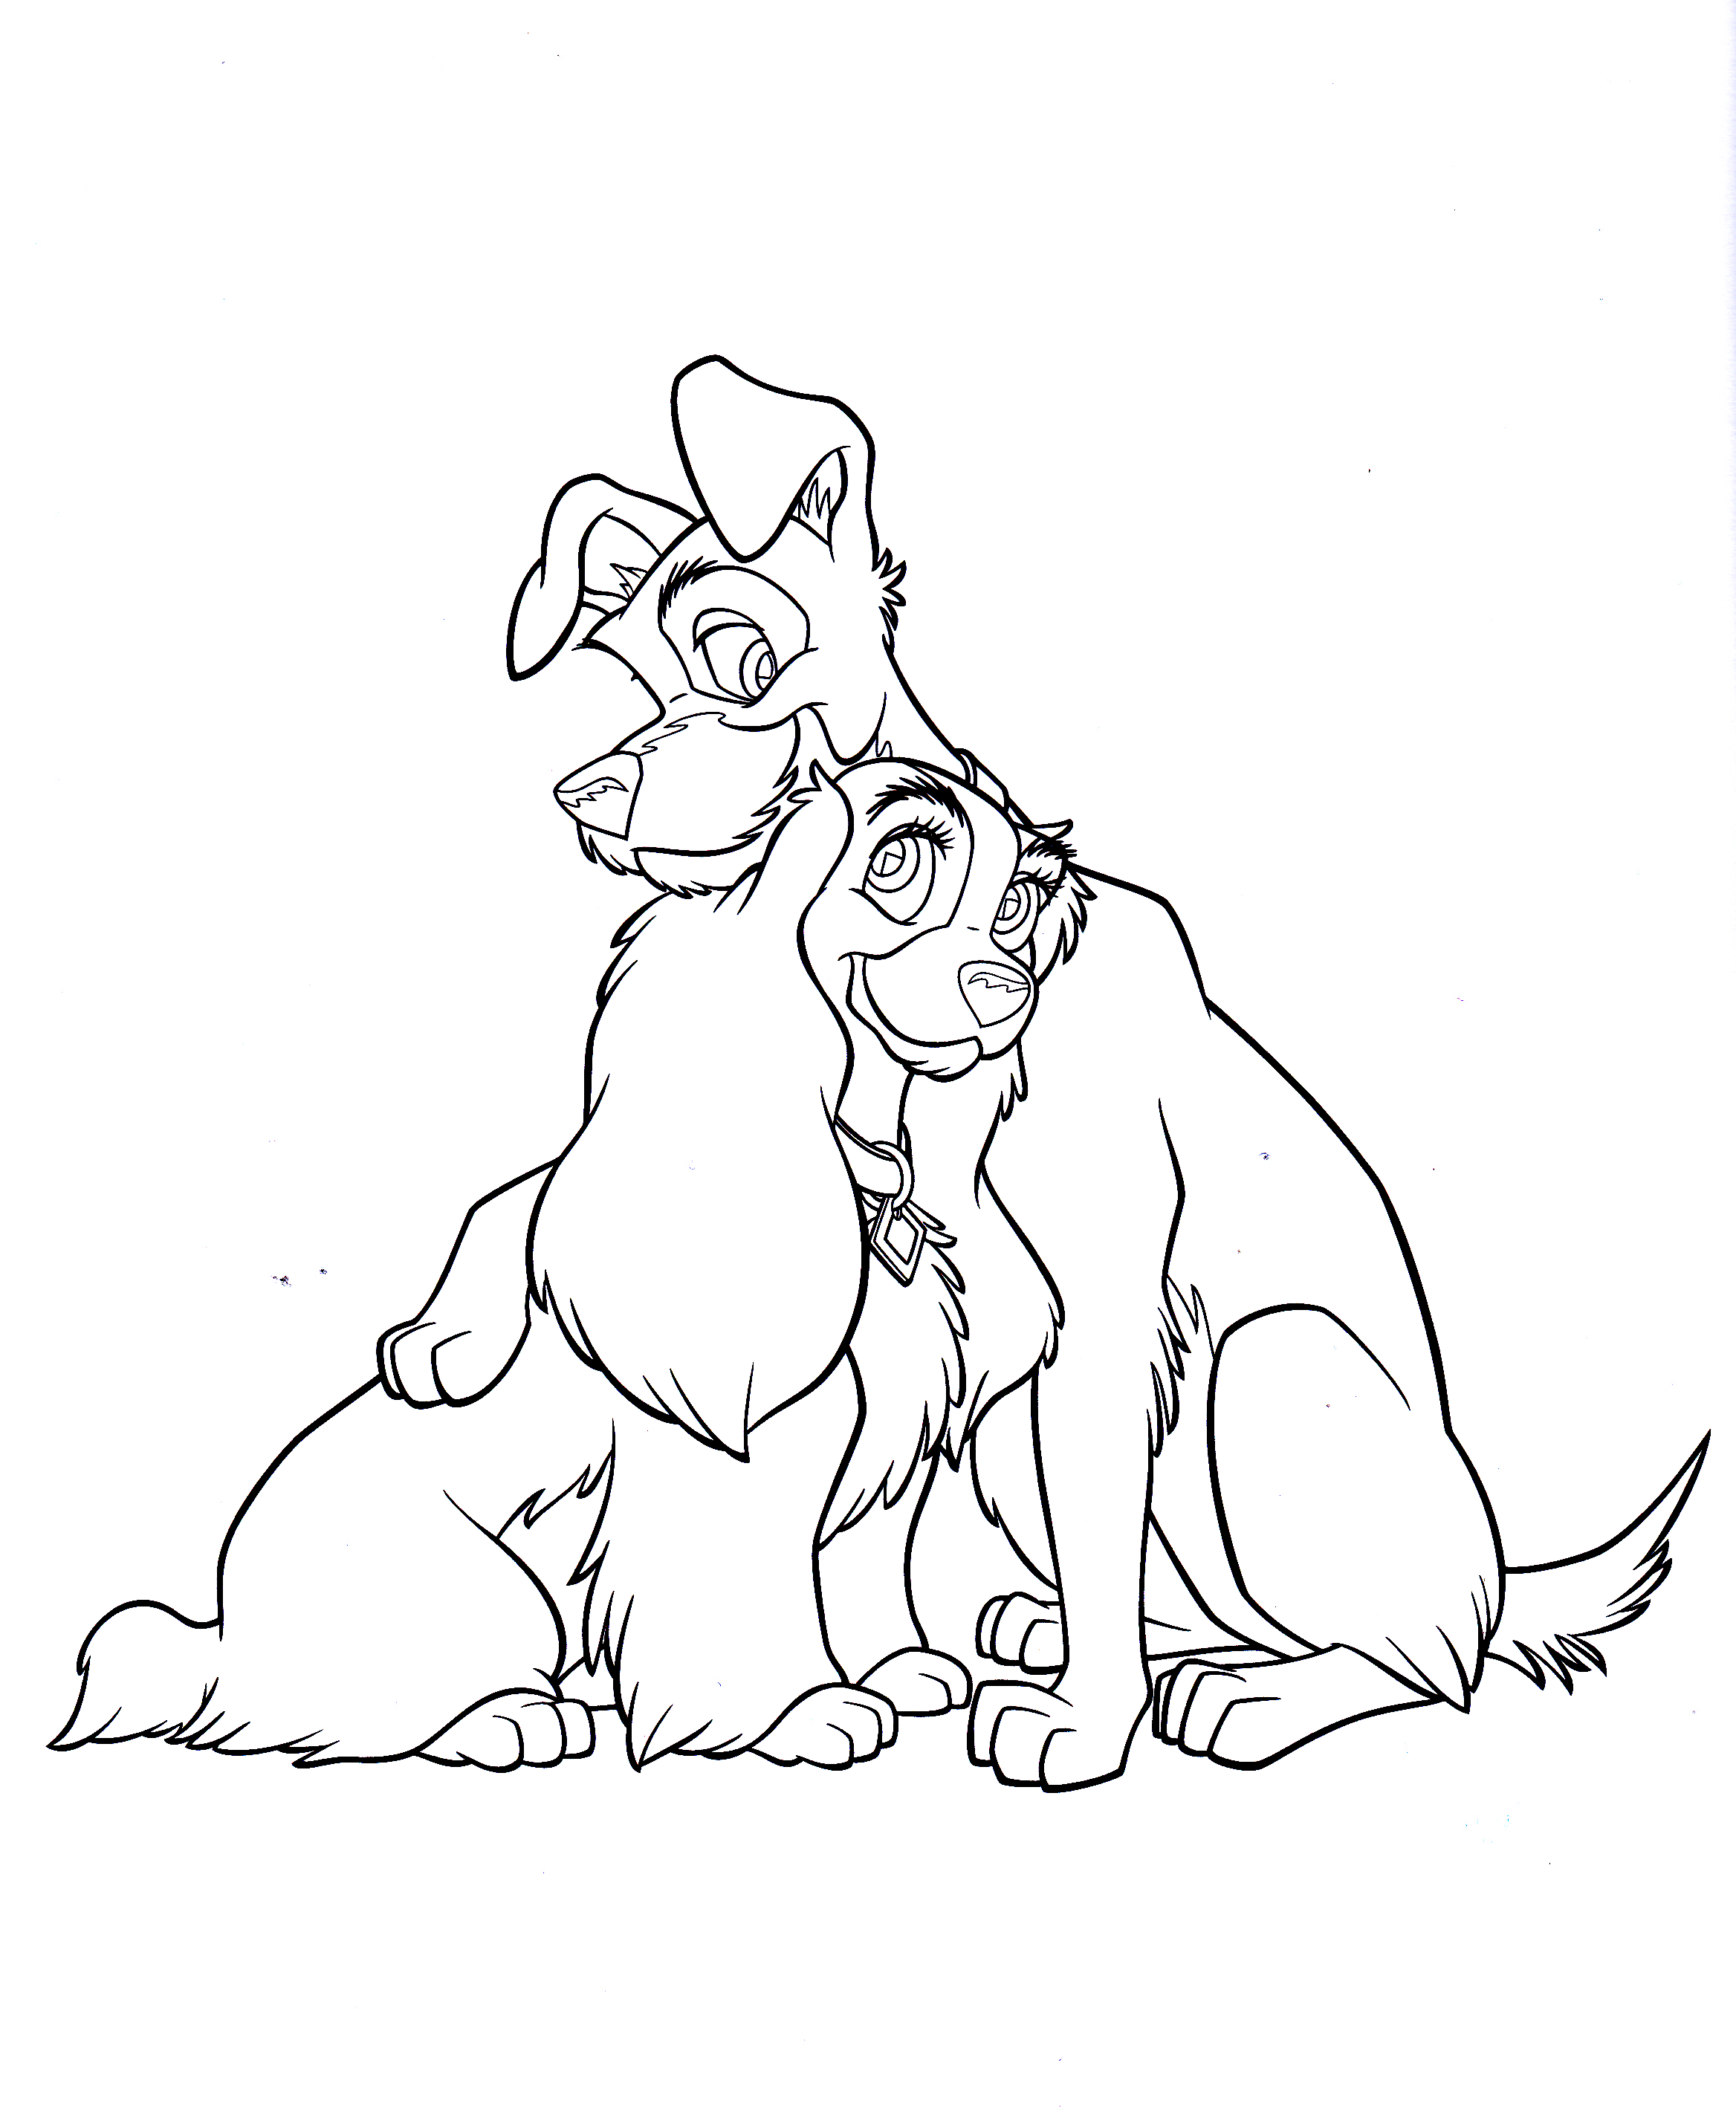 Walt Disney Coloring Pages Lady The Tramp Personajes De Walt Disney Foto 37795132 Fanpop Page 4